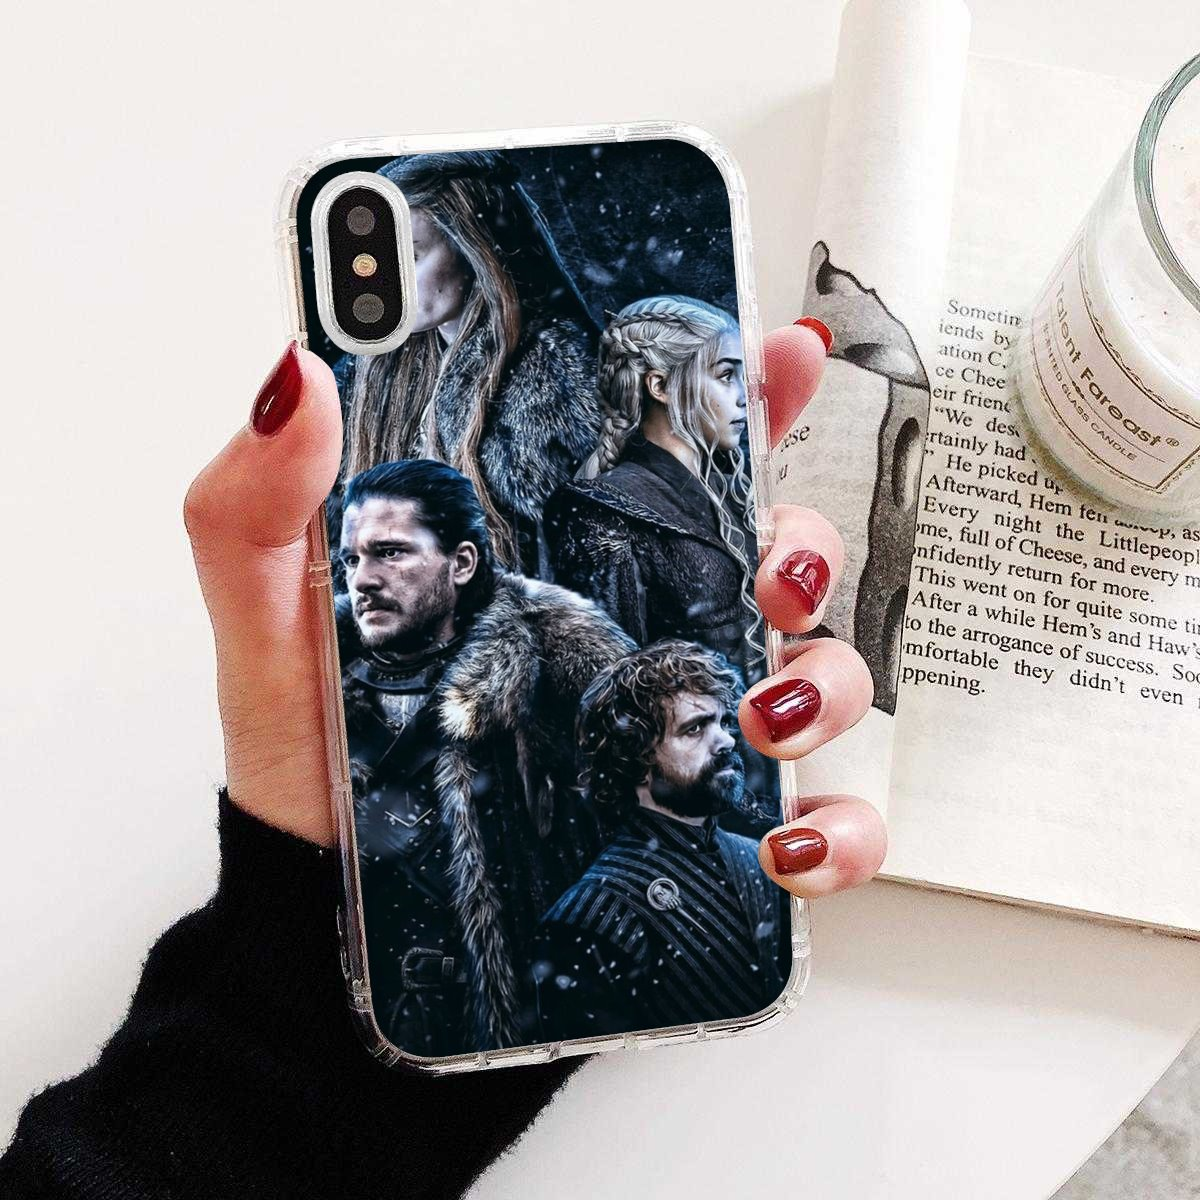 Cute Game Of Thrones For LG G2 G3 G4 Mini G5 G6 G7 Q6 Q7 Q8 Q9 V10 V20 V30 X Power 2 3 Spirit Stunning Silicone Phone Case